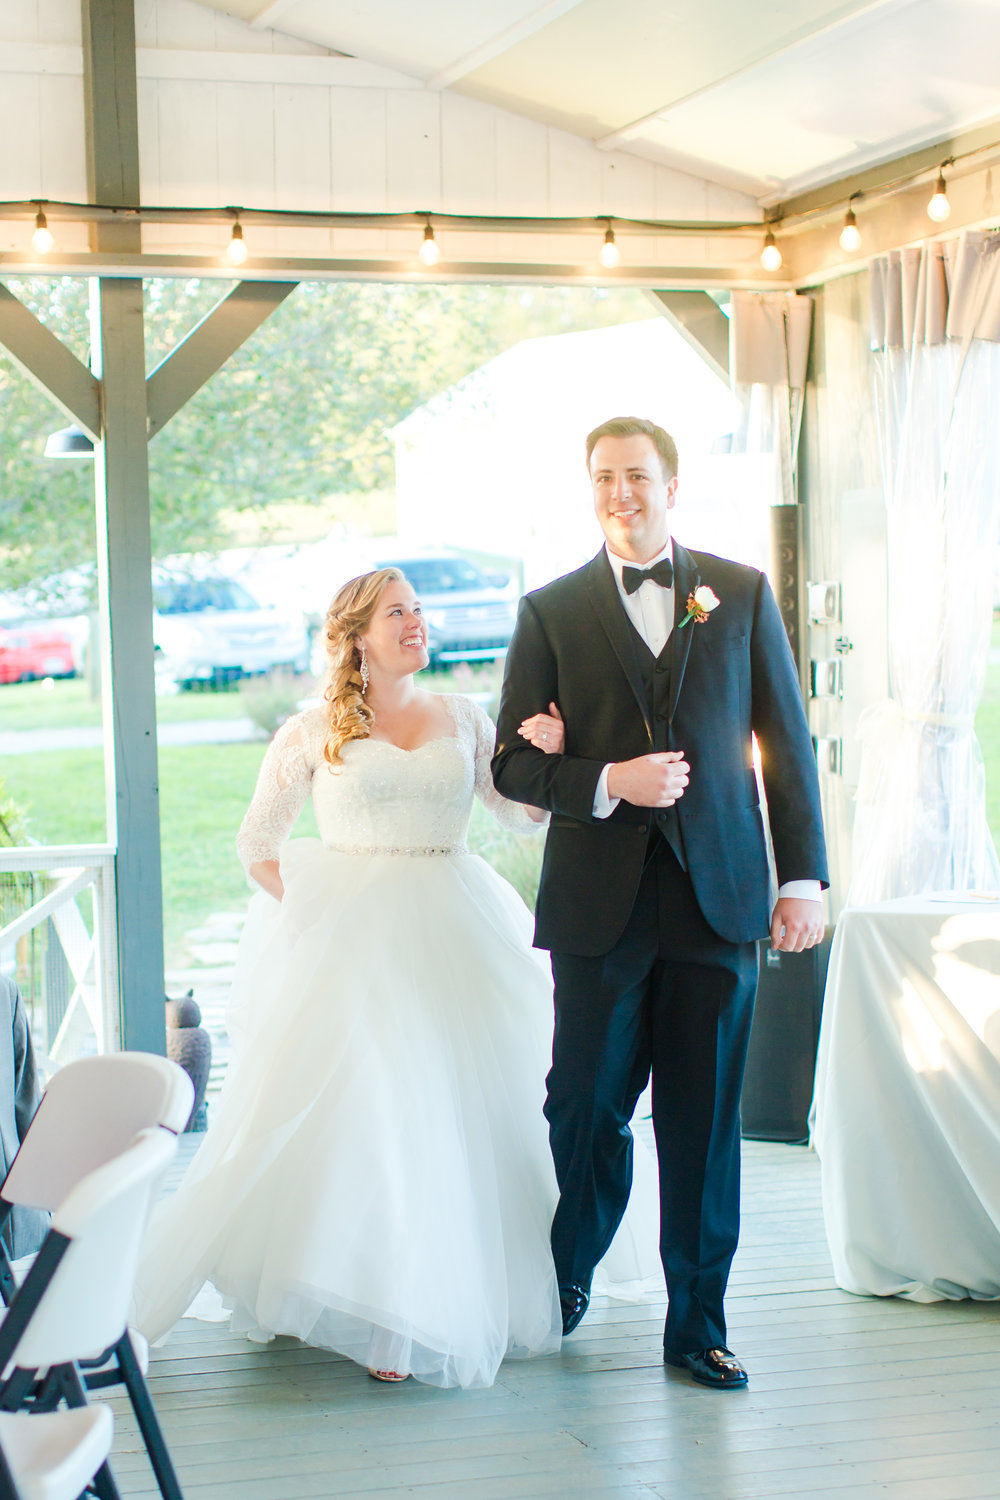 dv entertainment charlottesville wedding staunton wedding gaie lea wedding DJ eric and lindsay bride groom entrance